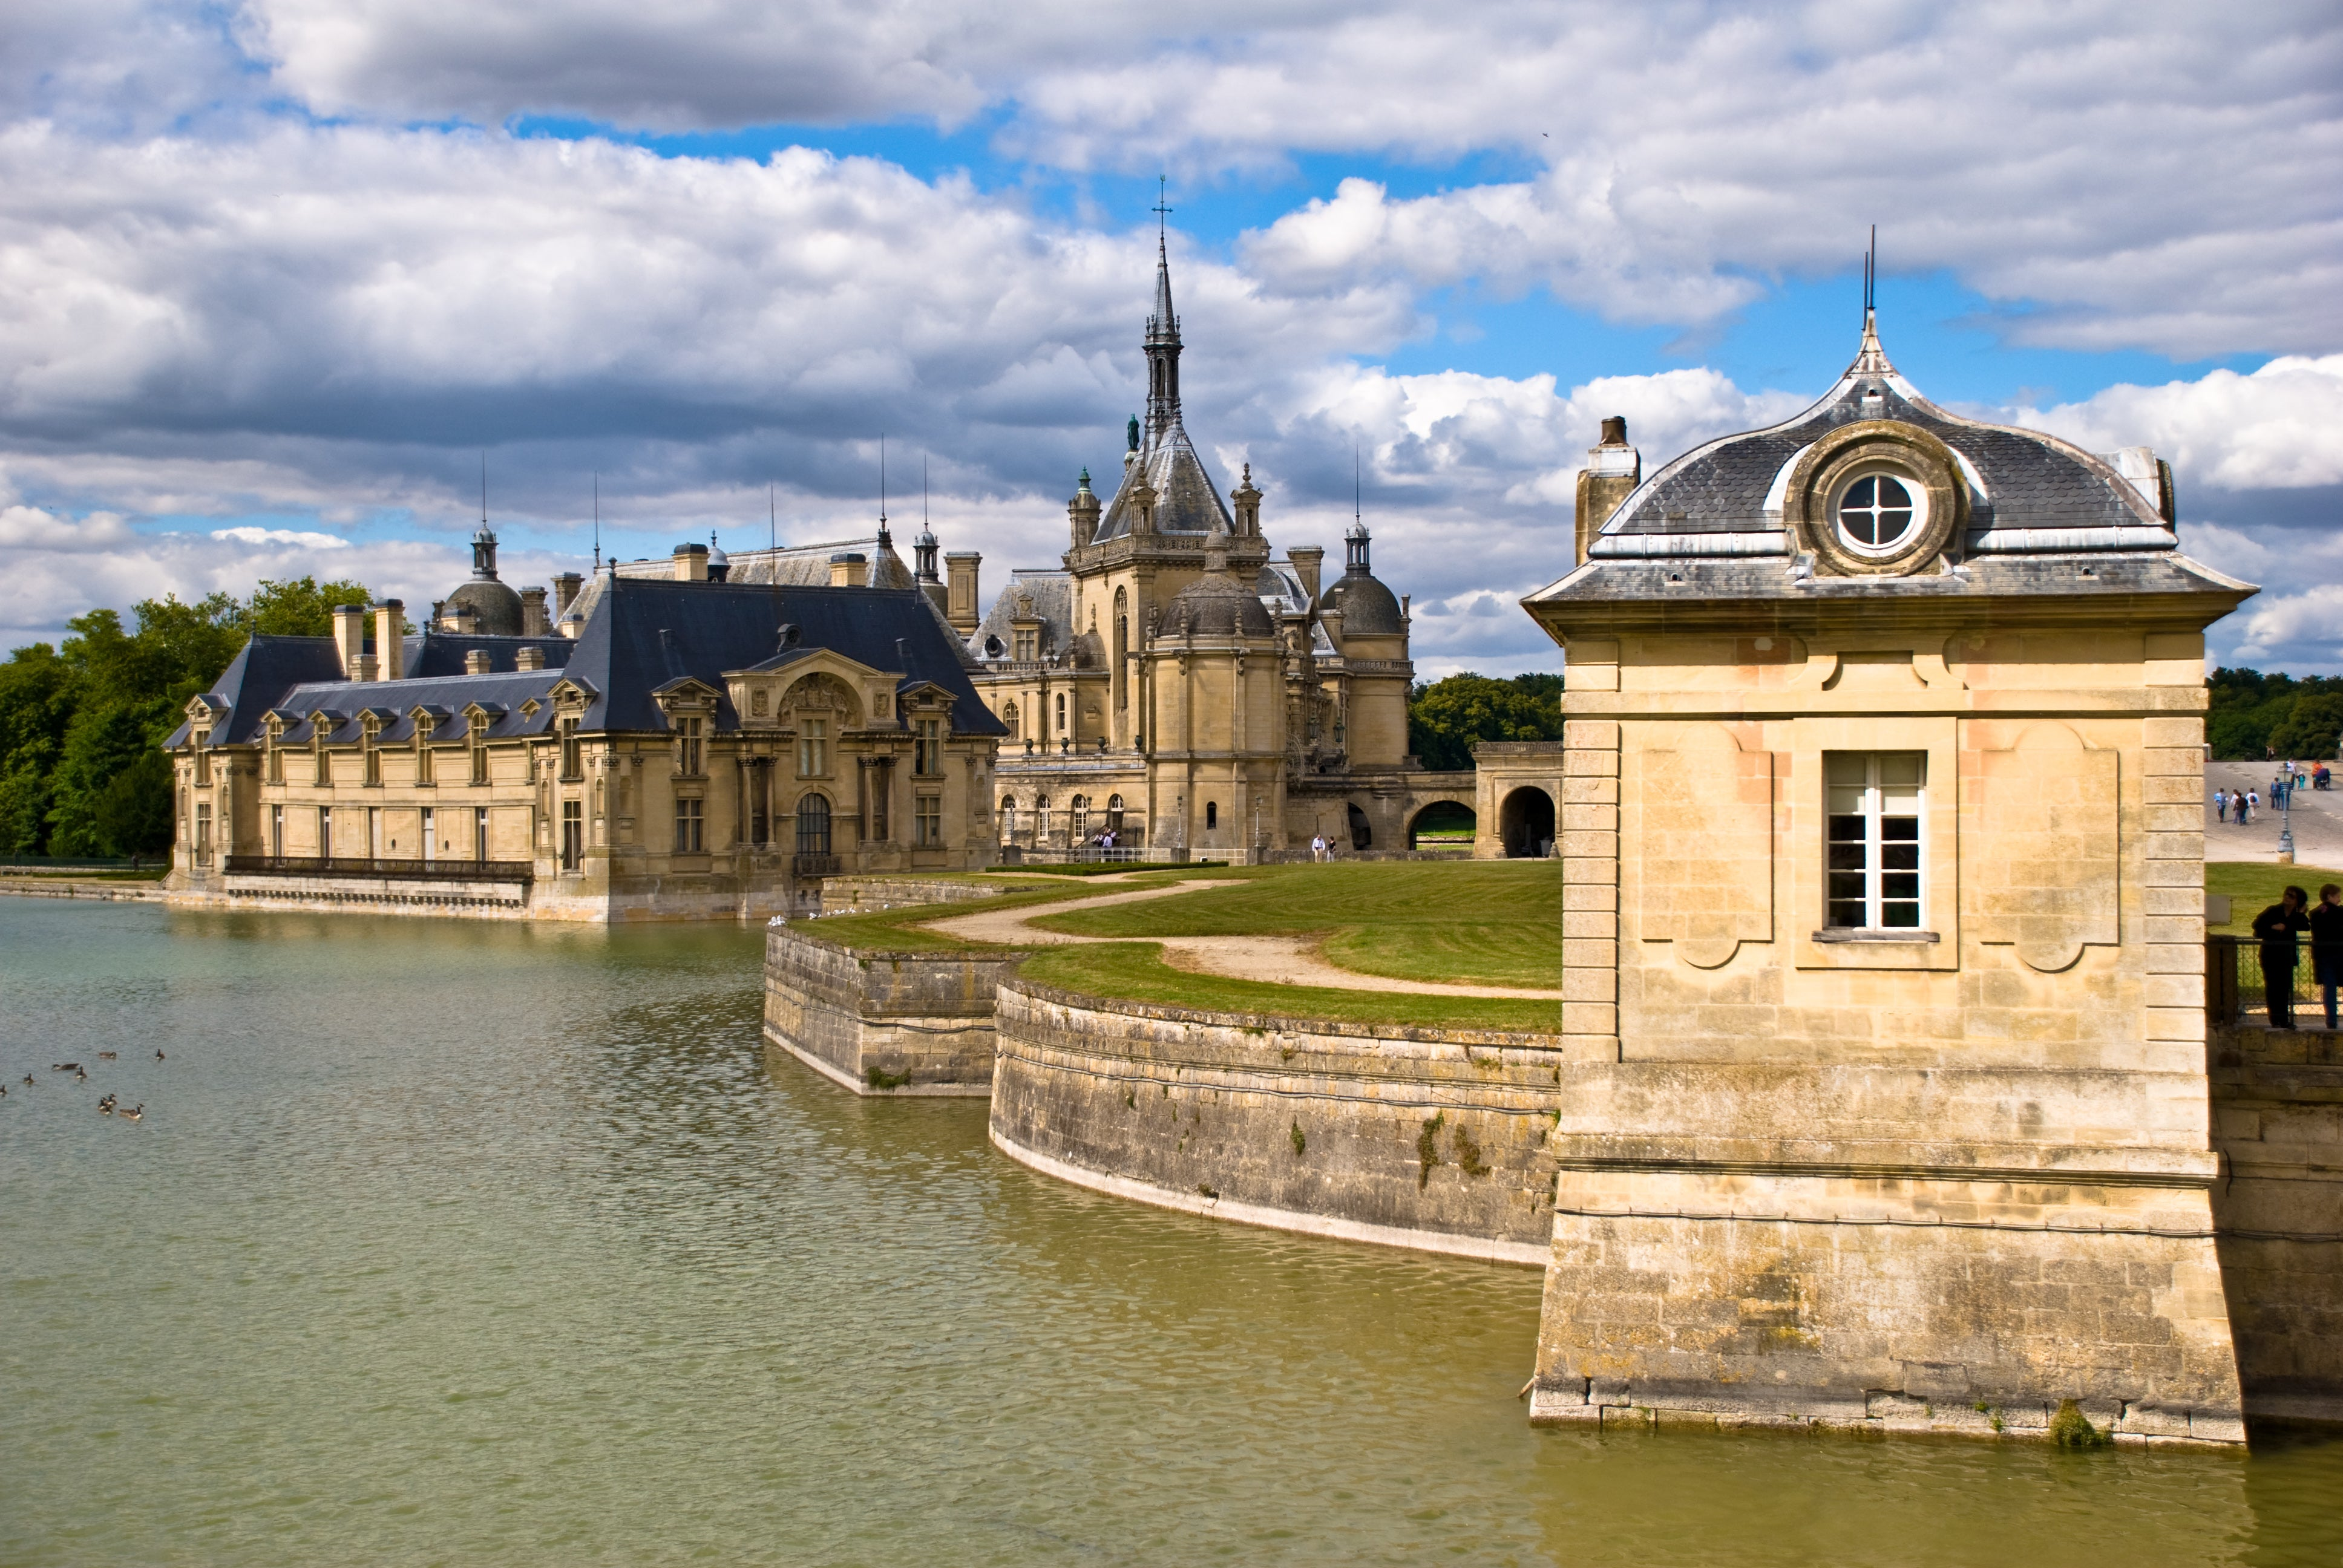 Edificio en Castillo de Chantilly